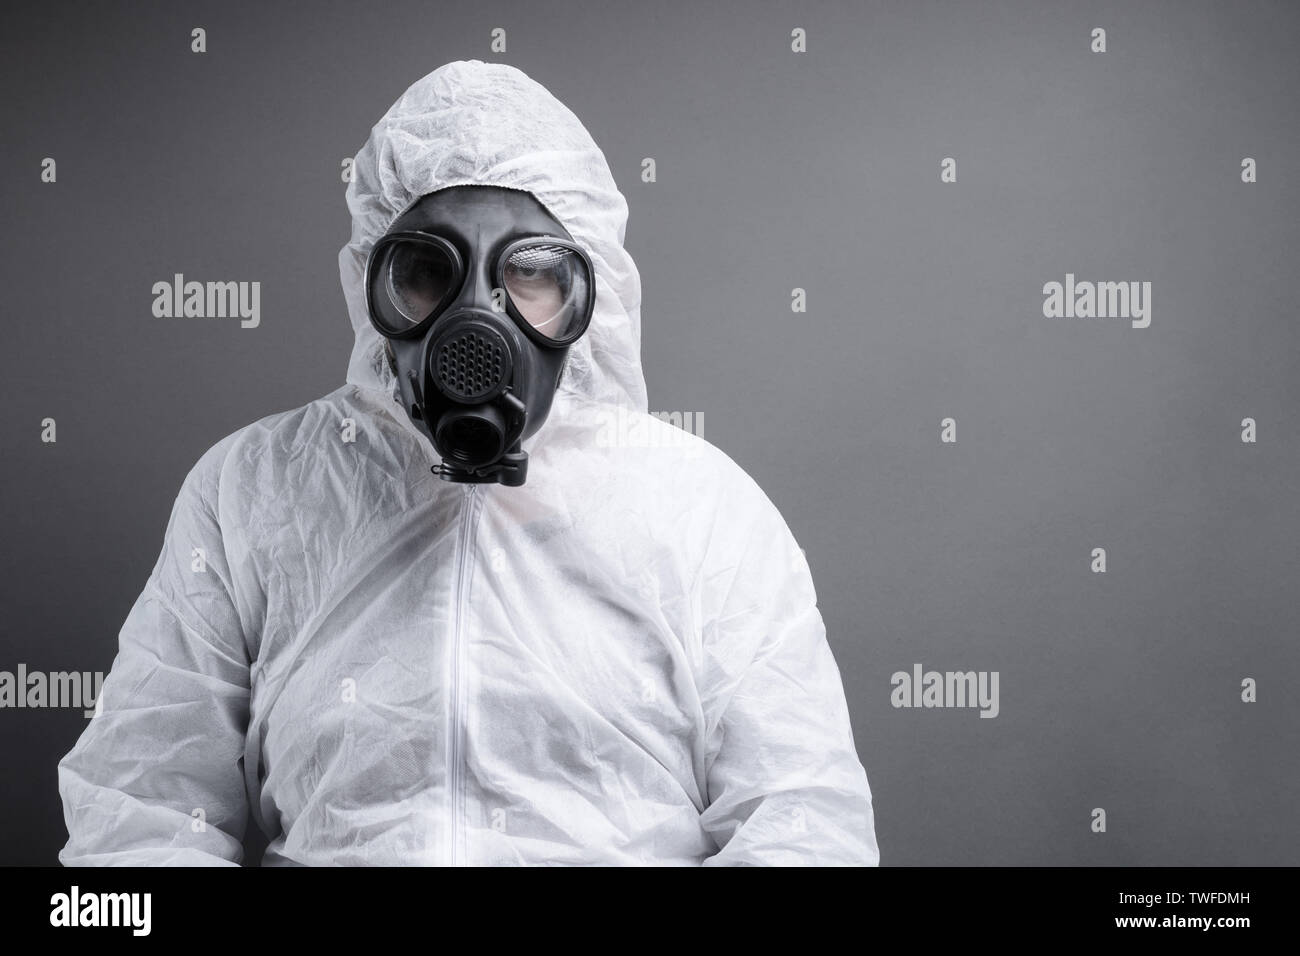 man with gas mask in protective overall suit against grey background - Stock Image